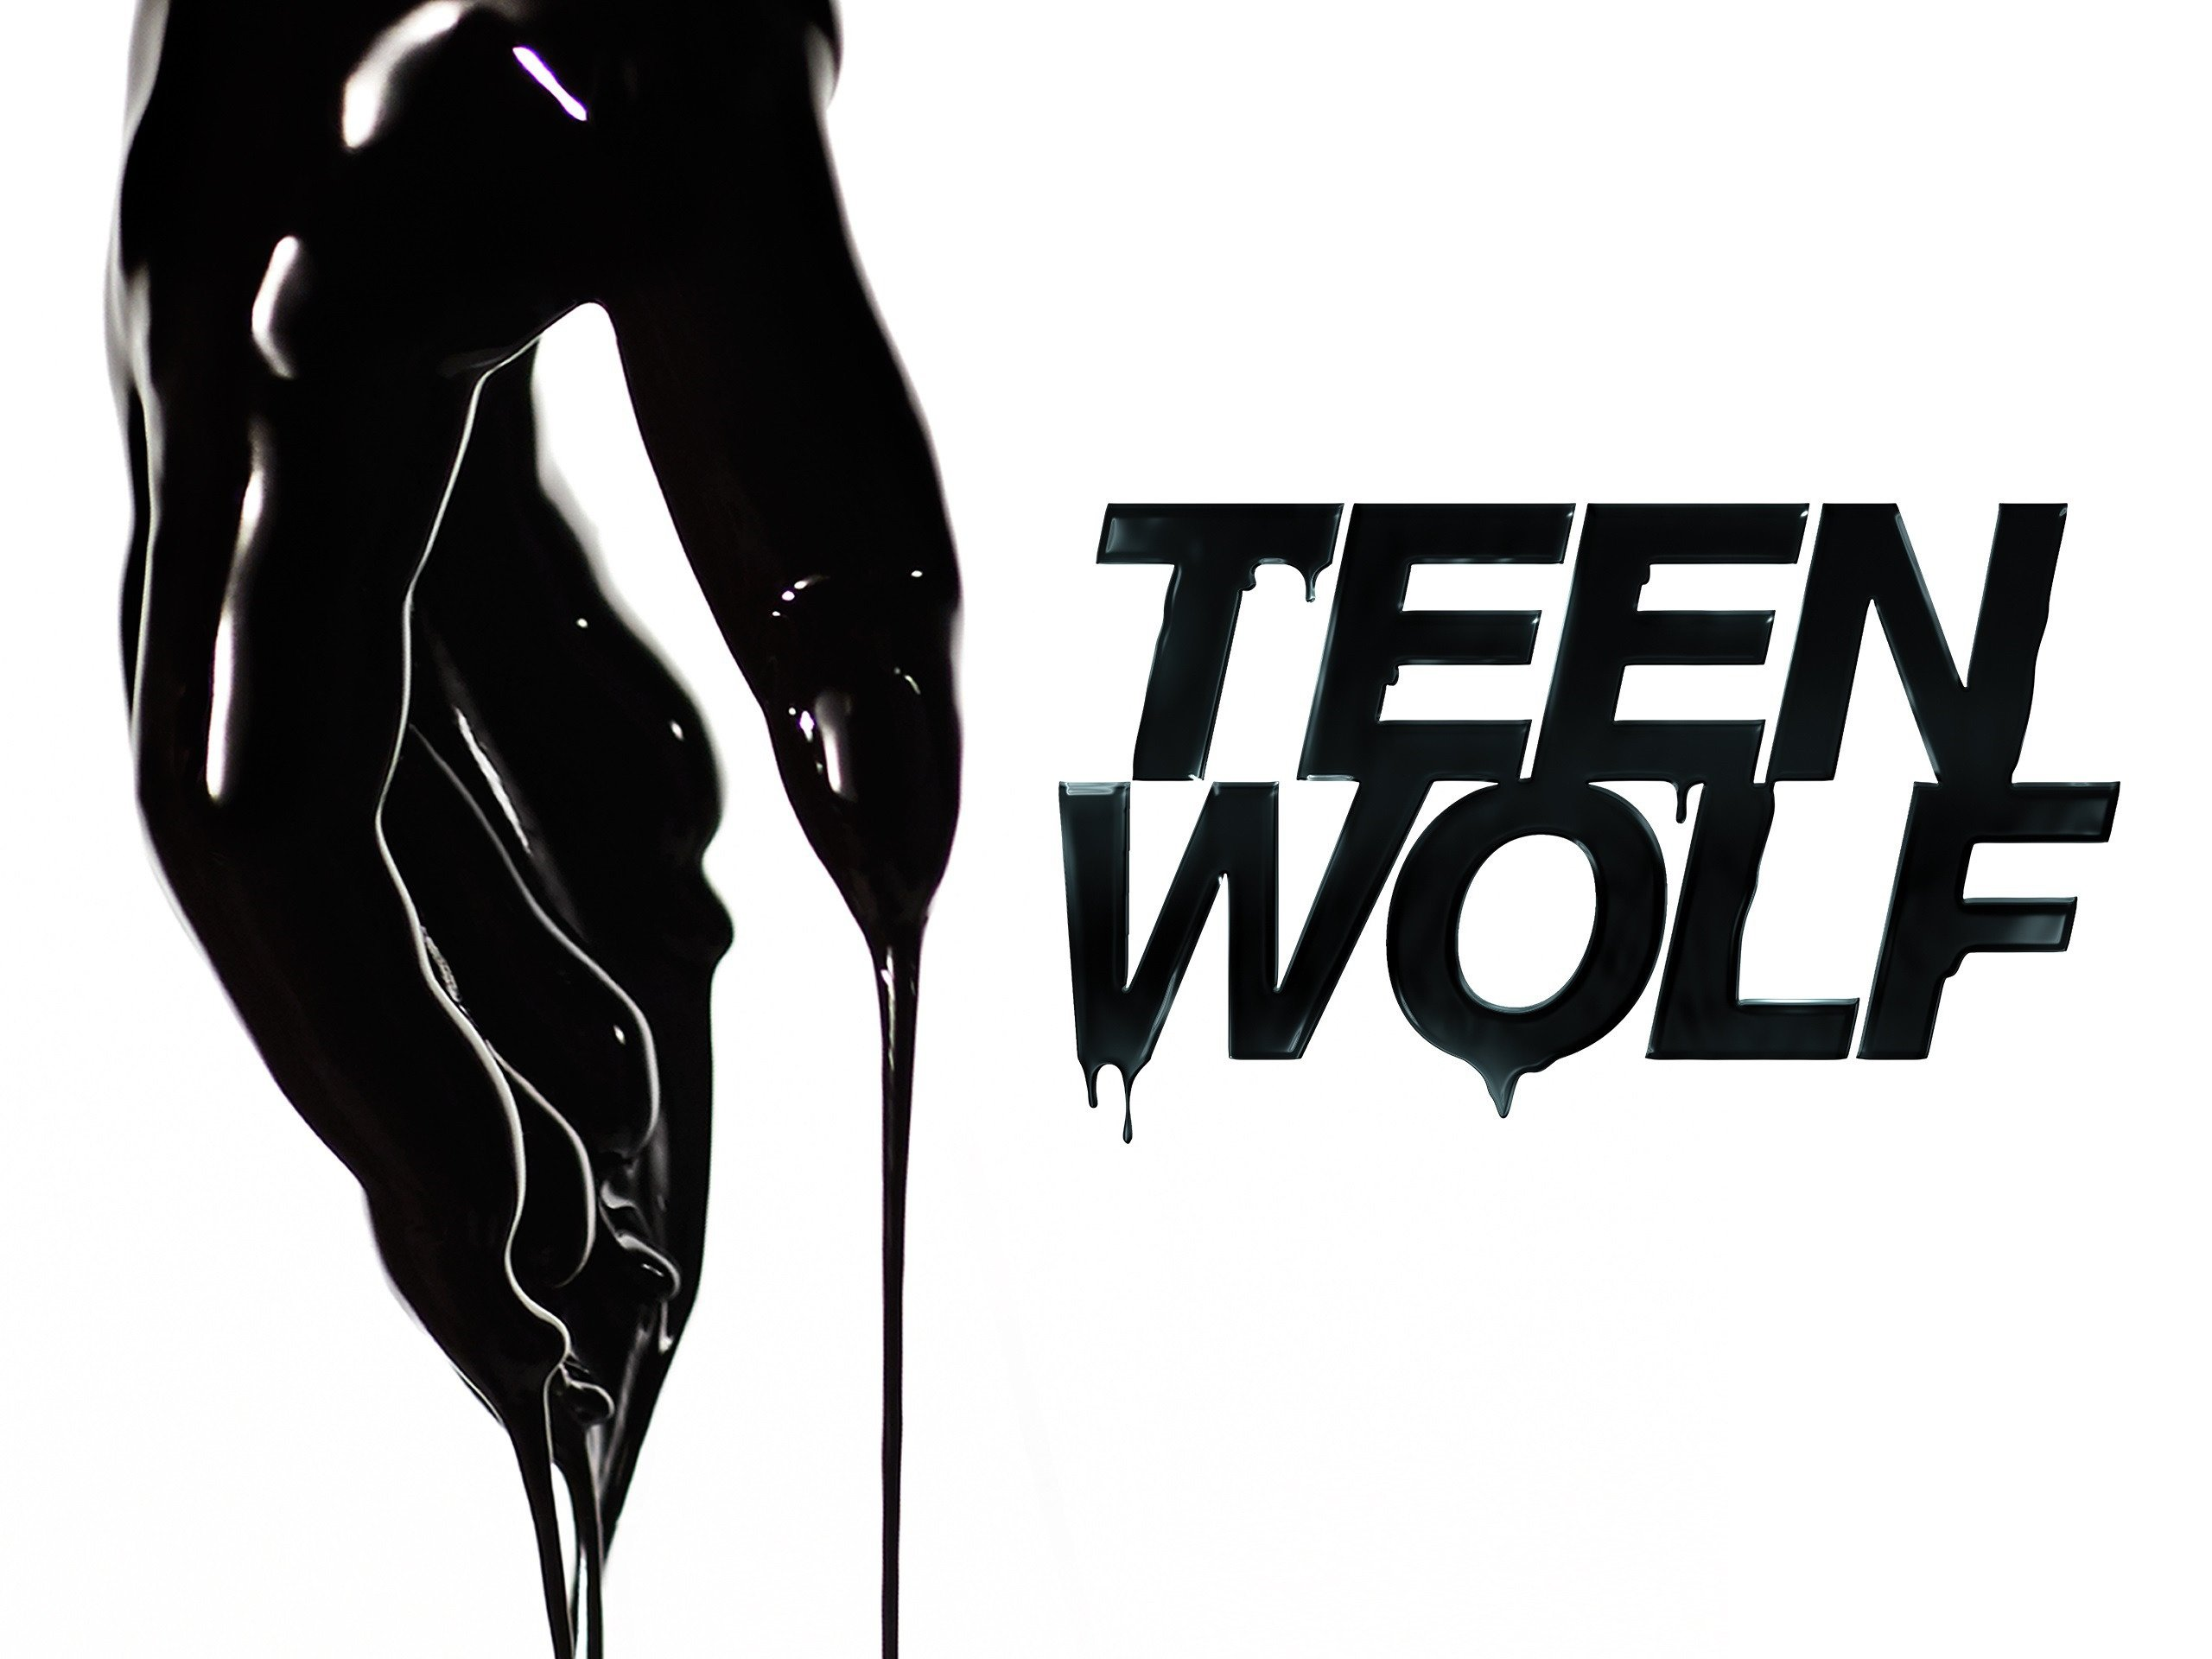 Amazon teen wolf season 5 part 2 tyler posey dylan obrien amazon teen wolf season 5 part 2 tyler posey dylan obrien russell mulcahy tim andrew christian taylor ren echevarria amazon digital services m4hsunfo